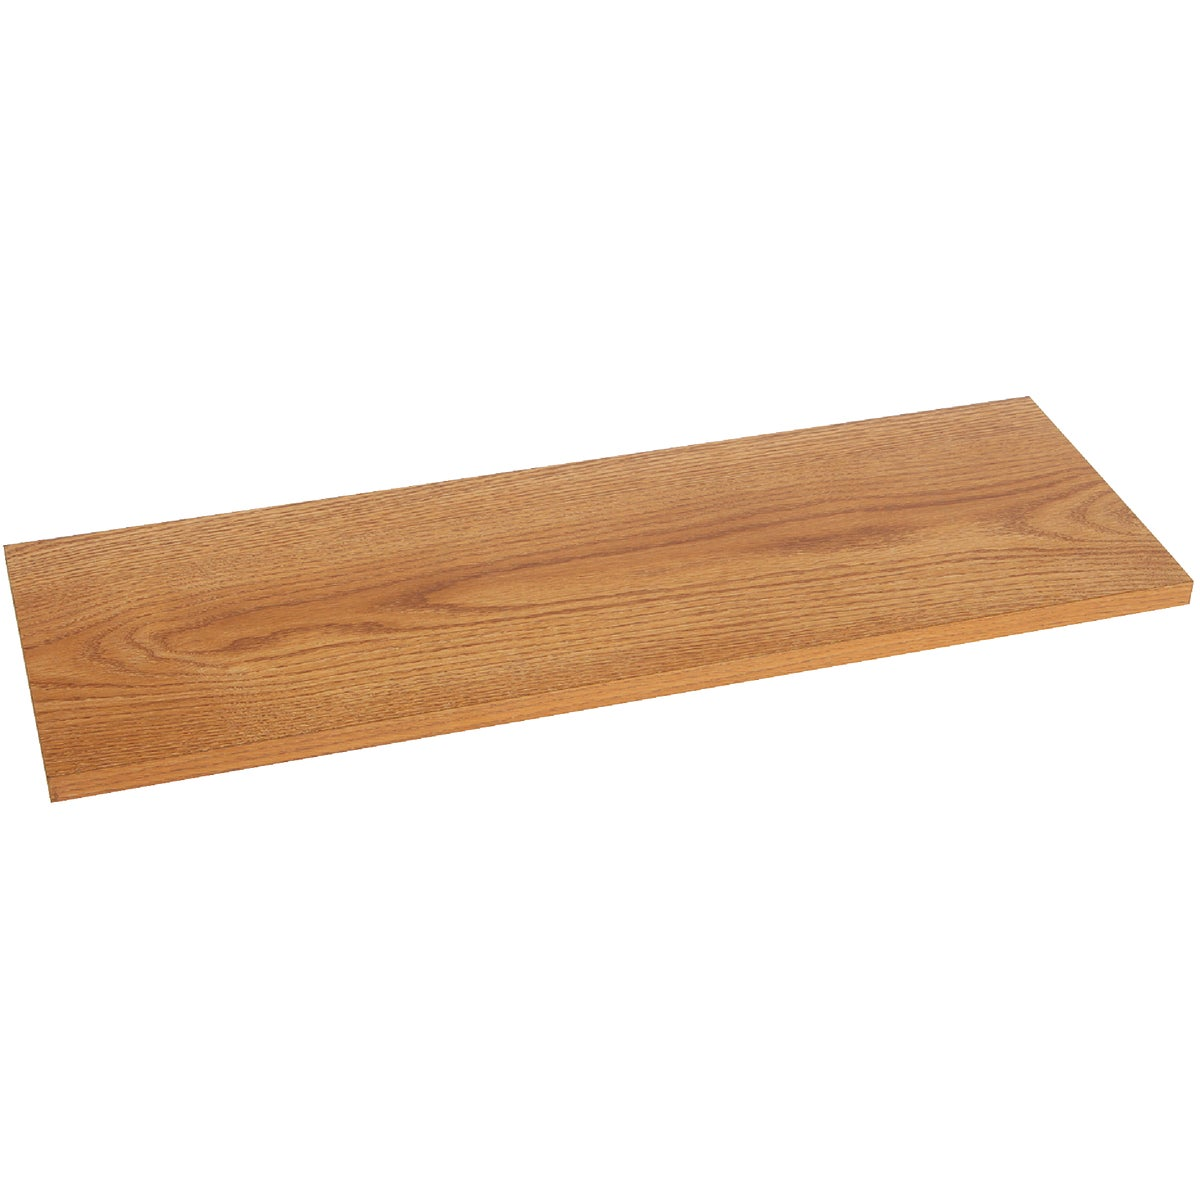 10X24 OAK SHELF - 1980OK10X24 by Knape & Vogt Mfg Co